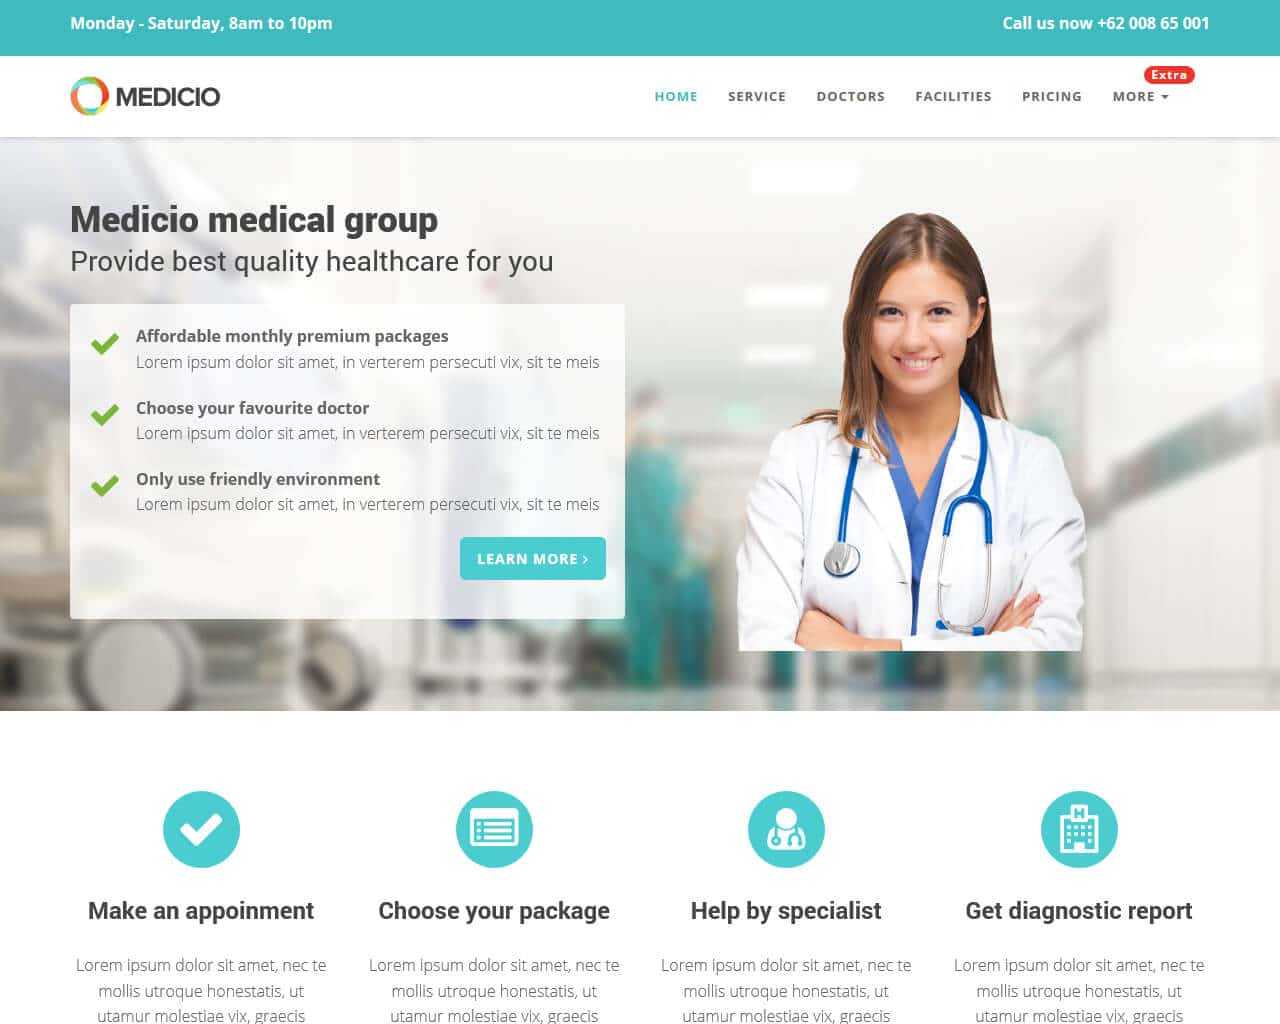 Medicio Website Template